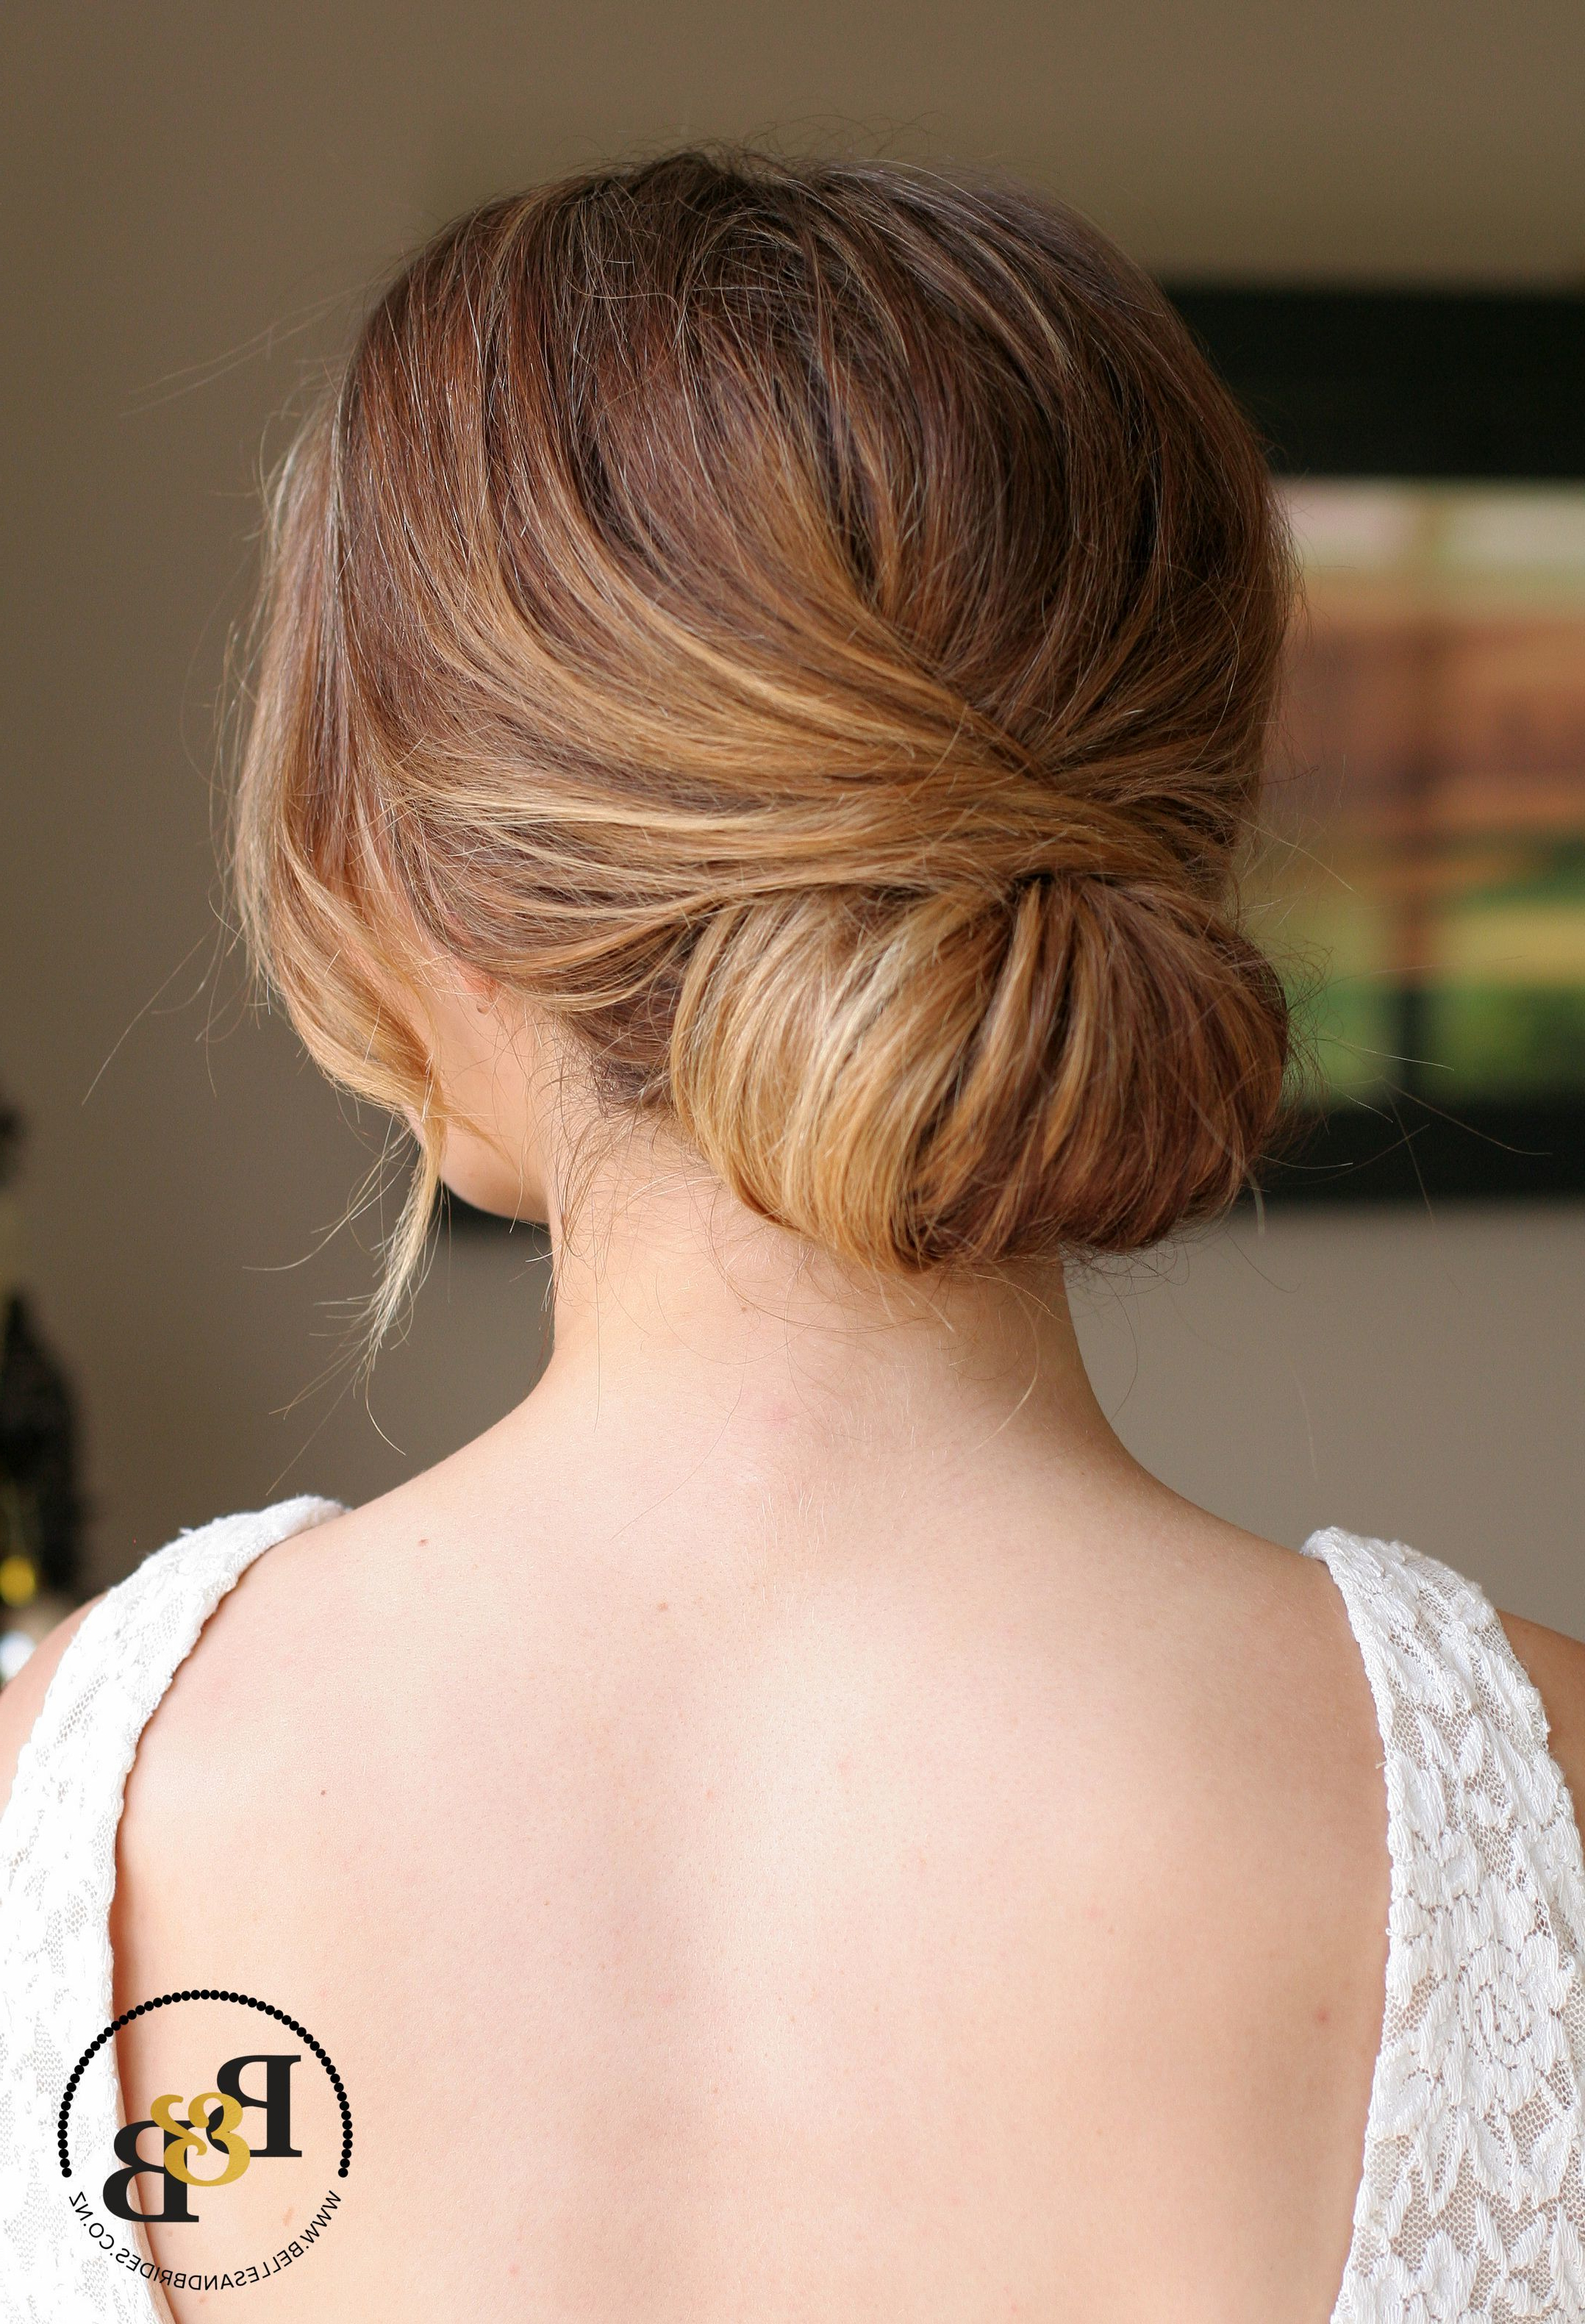 Wedding Hair Low Chignon / Casual Bridal Chignon / Soft Romantic Pertaining To Famous Short Classic Wedding Hairstyles With Modern Twist (View 8 of 20)